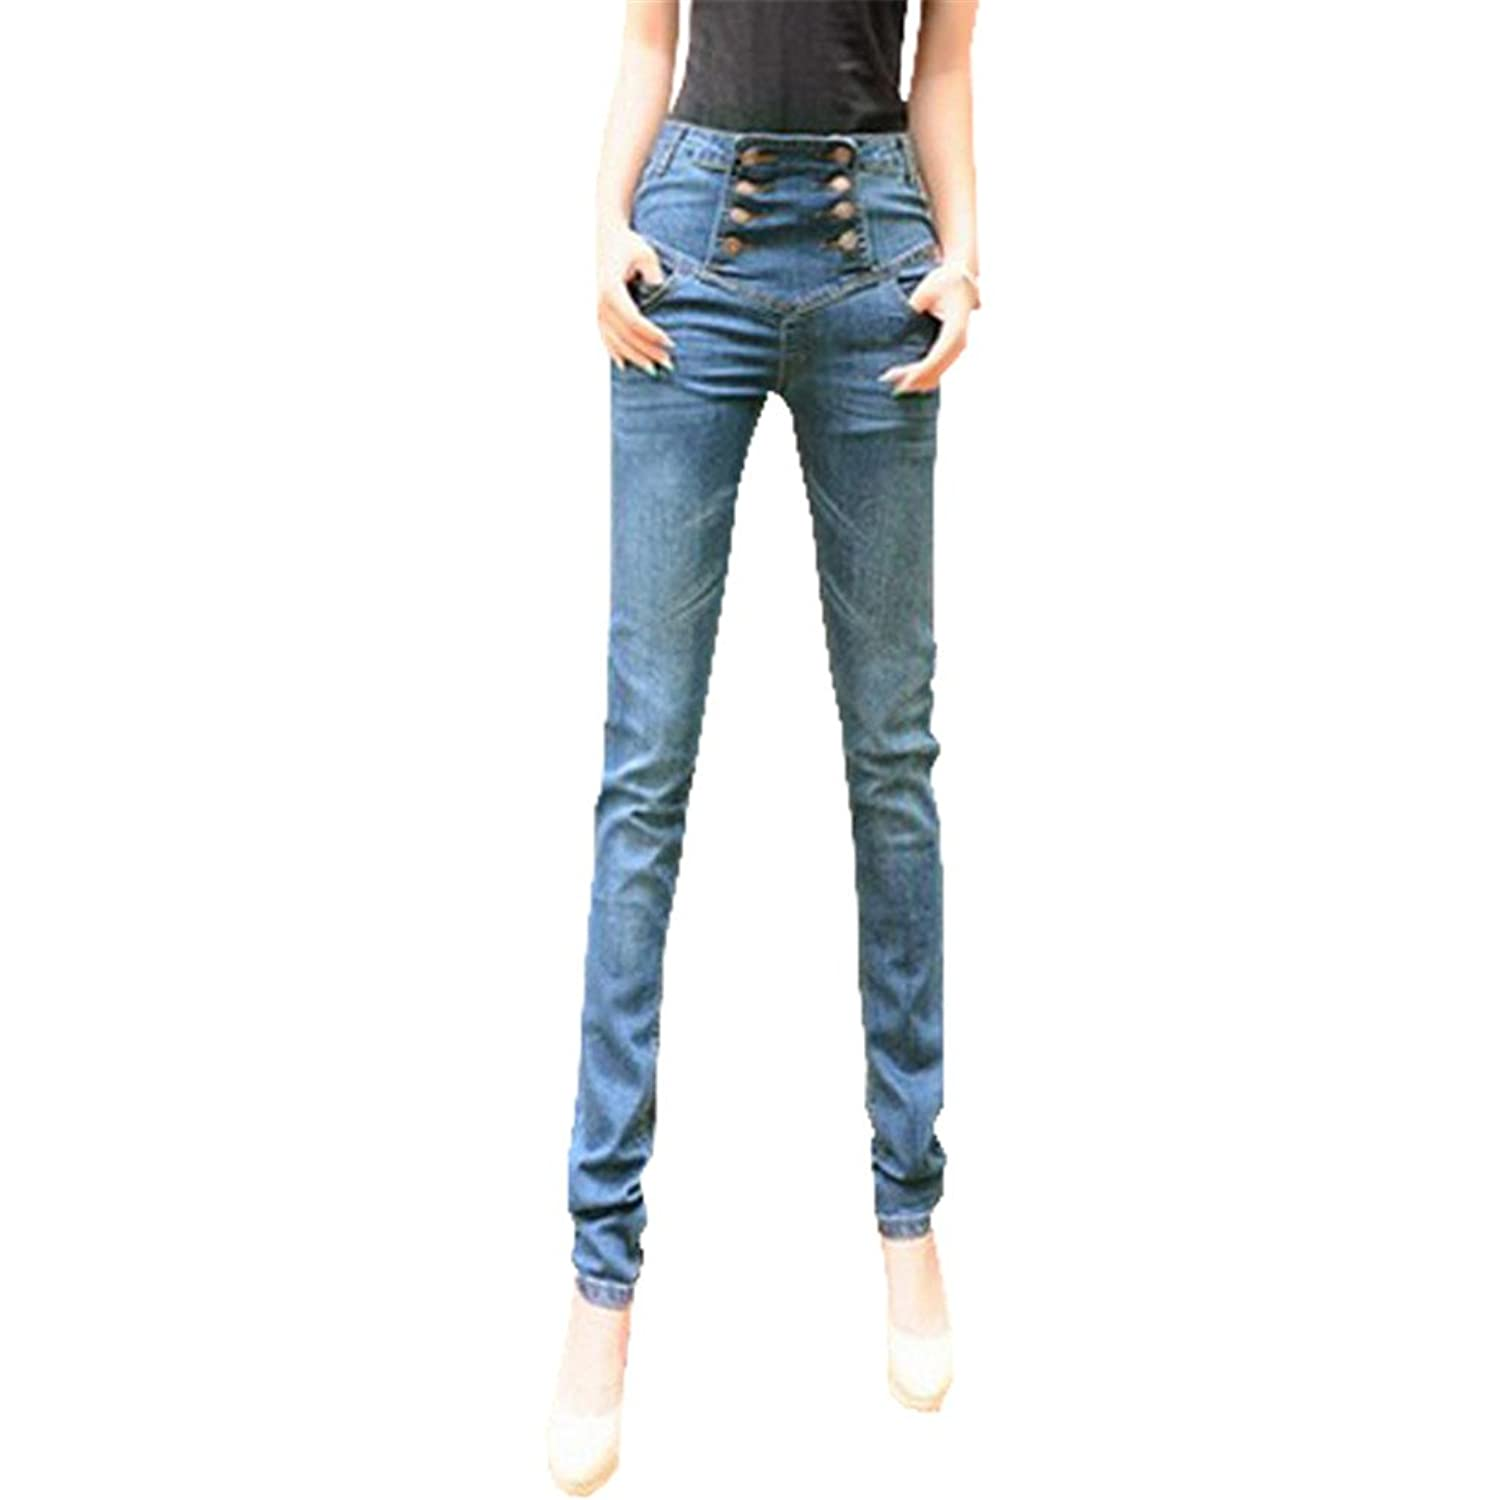 Women Jeans Pencil Double Breasted Pants High Waist Denim Pants Skinny Jeans